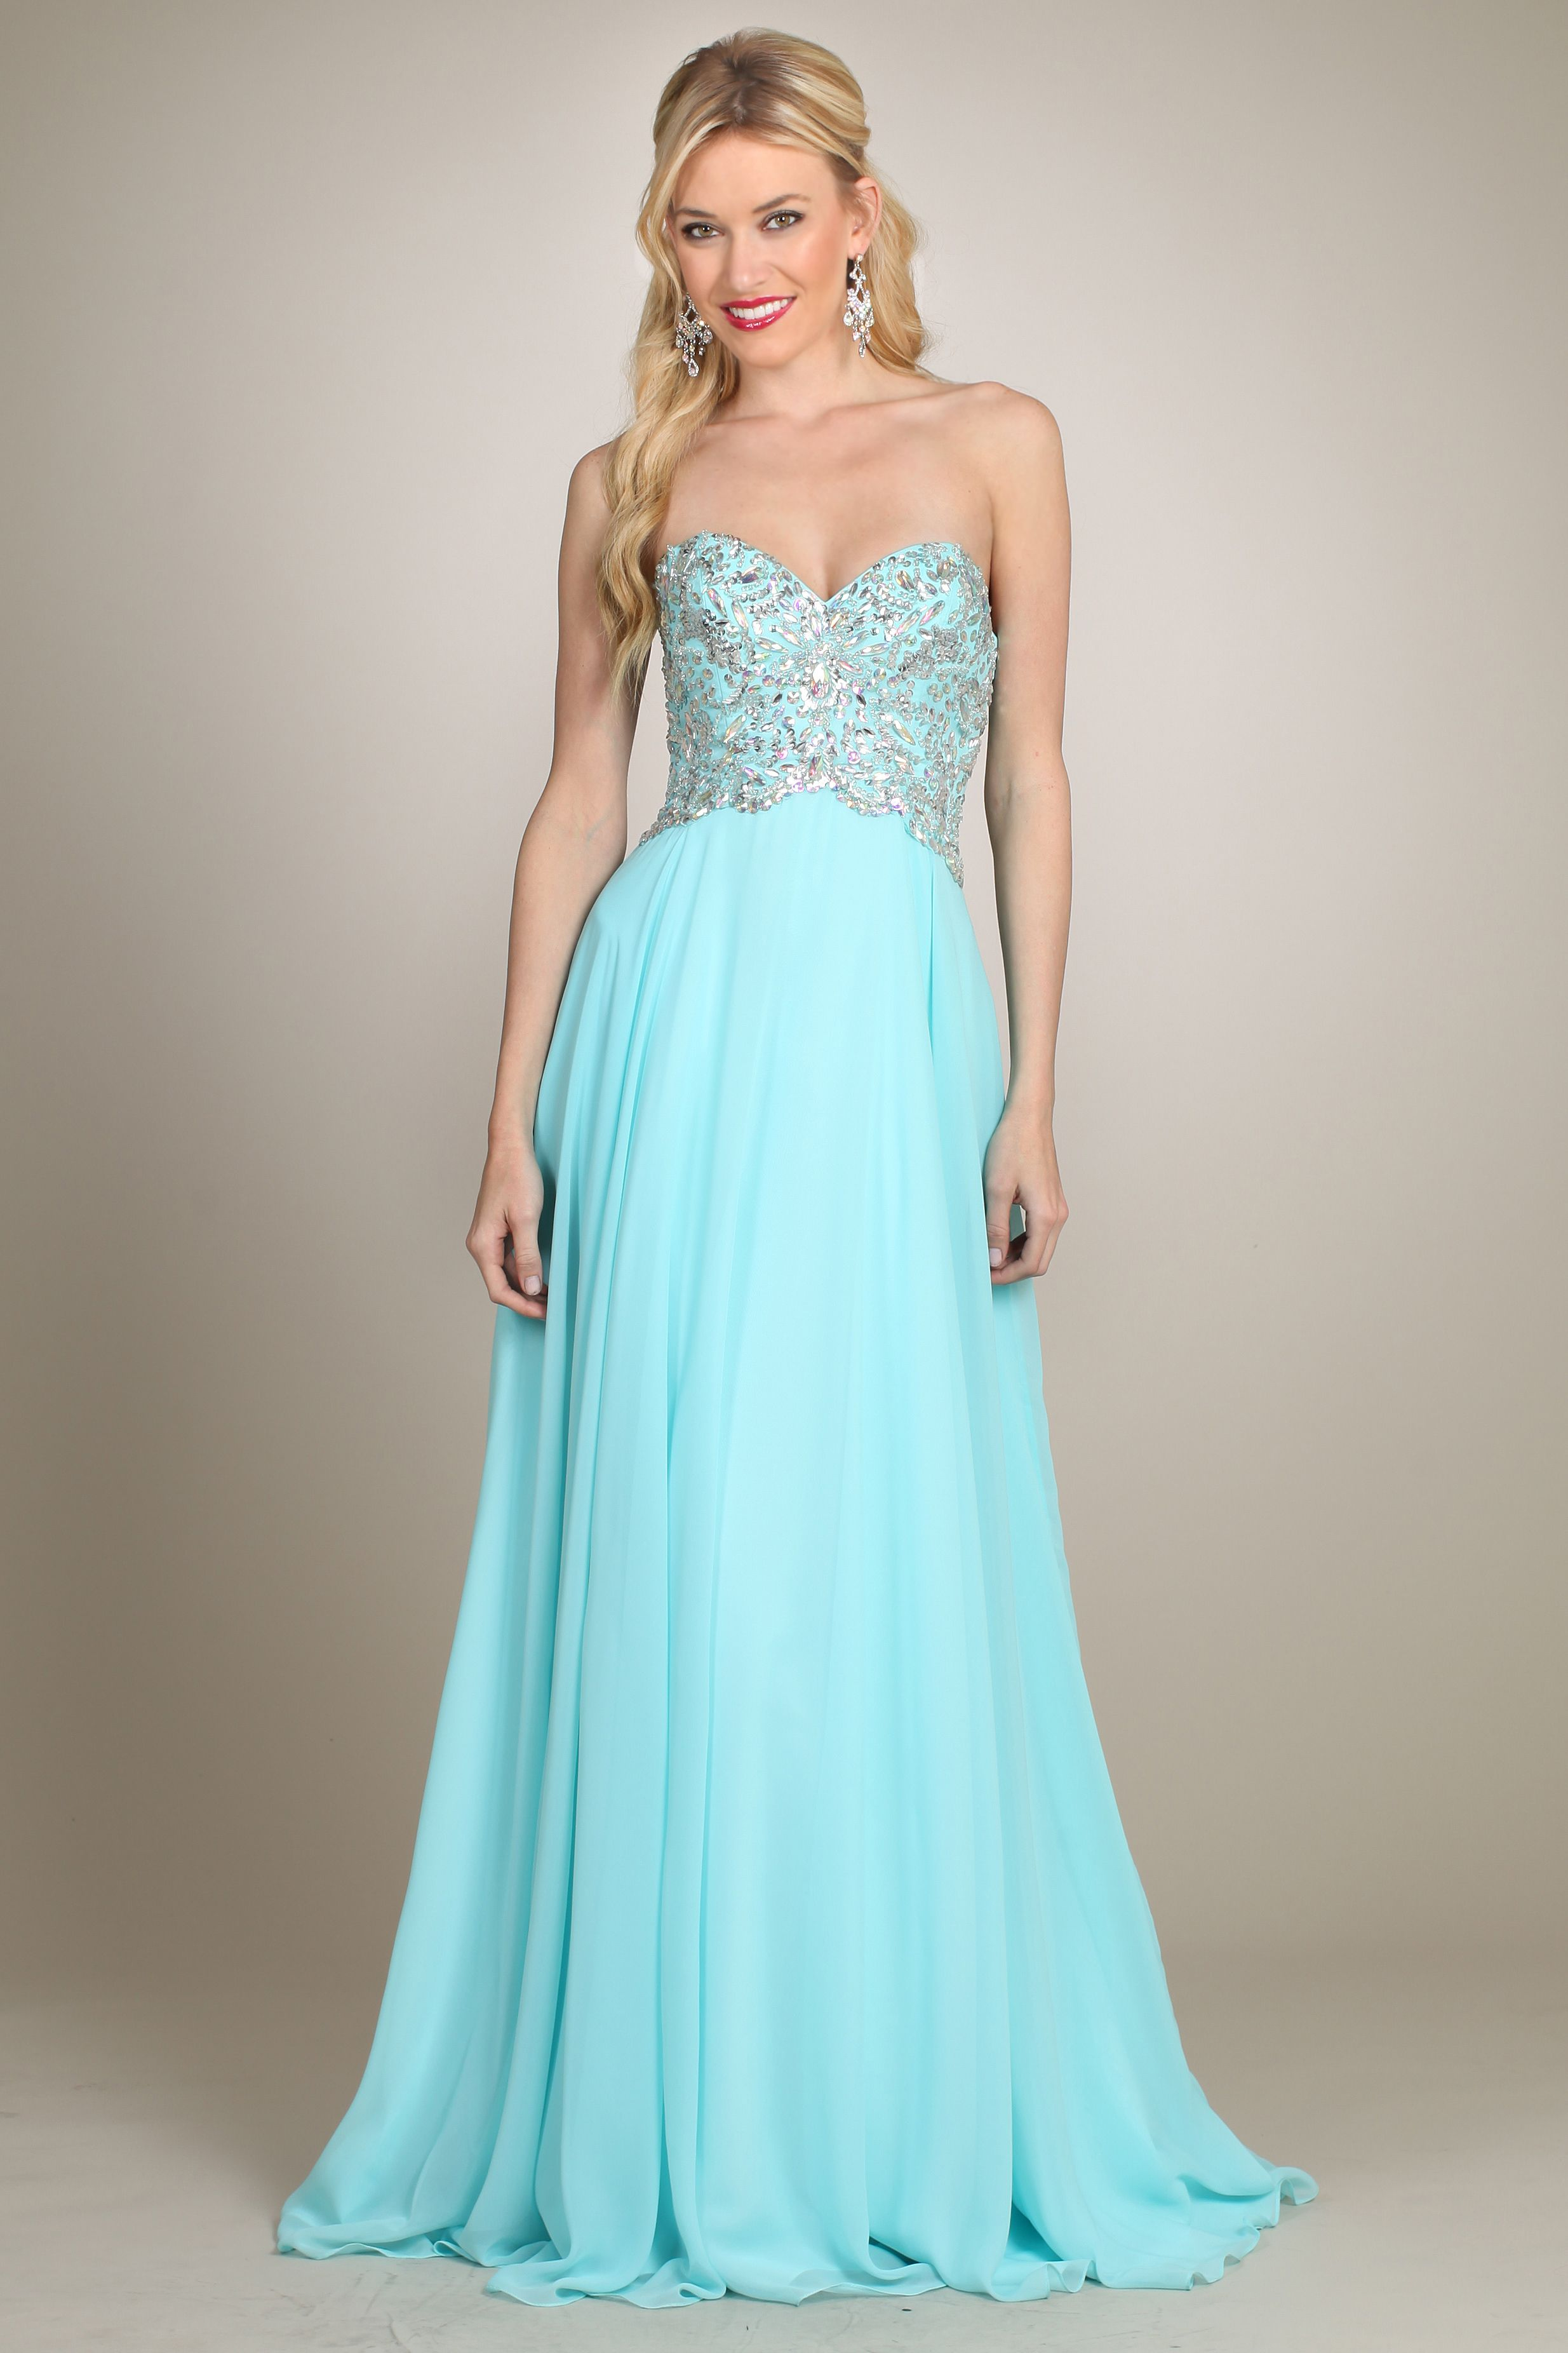 Mint Blue Prom Dress - YY0320 | Prom Dresses | Pinterest | Mint ...